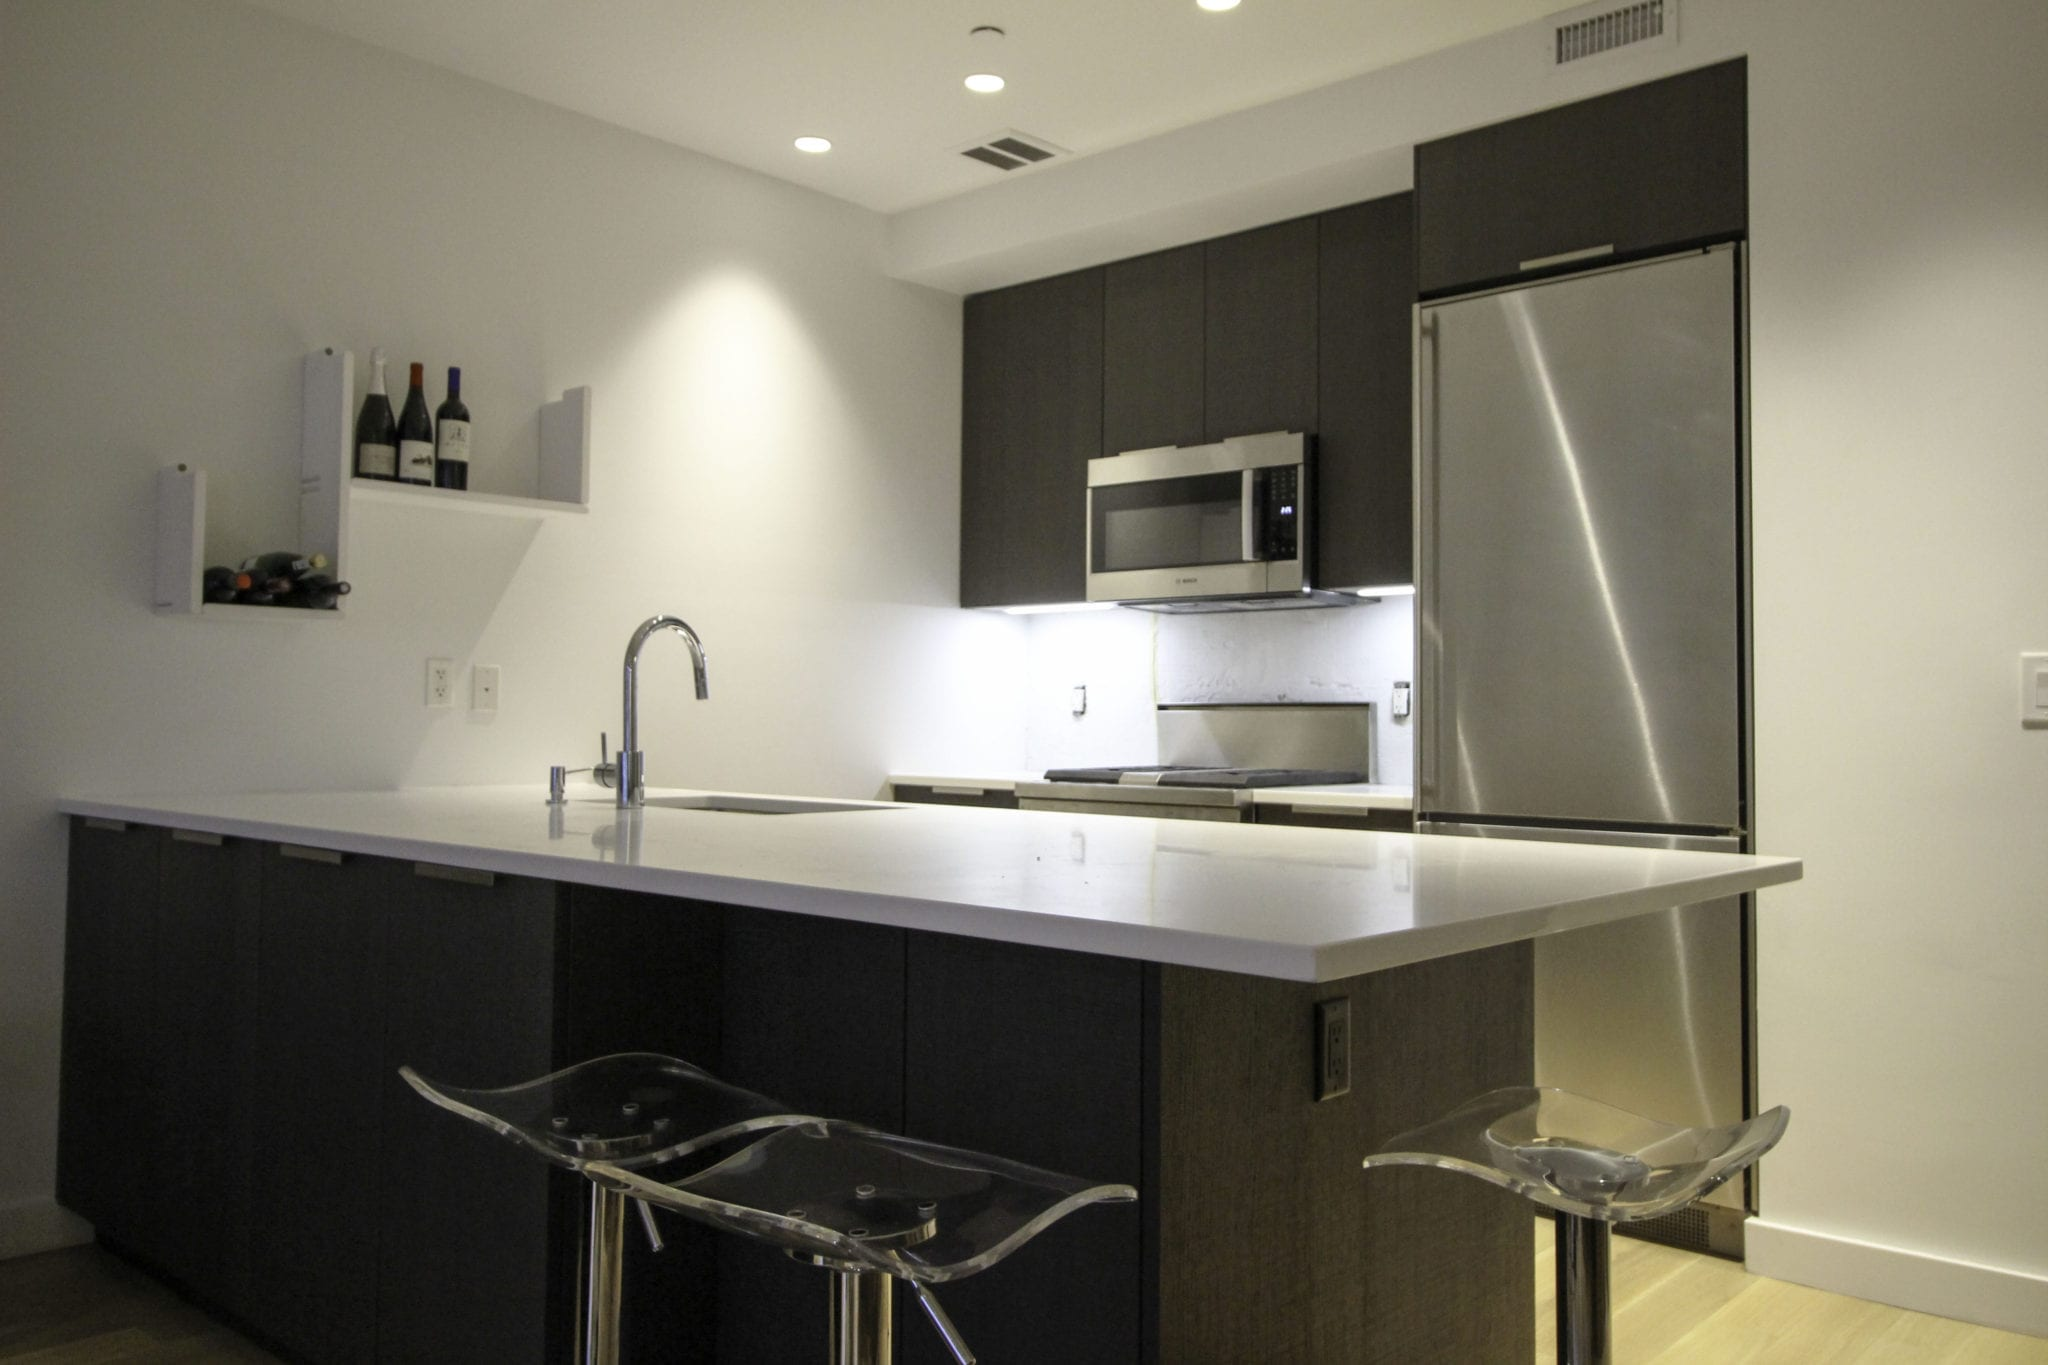 The Latest Trends The Latest Concept In Modern Kitchen Design